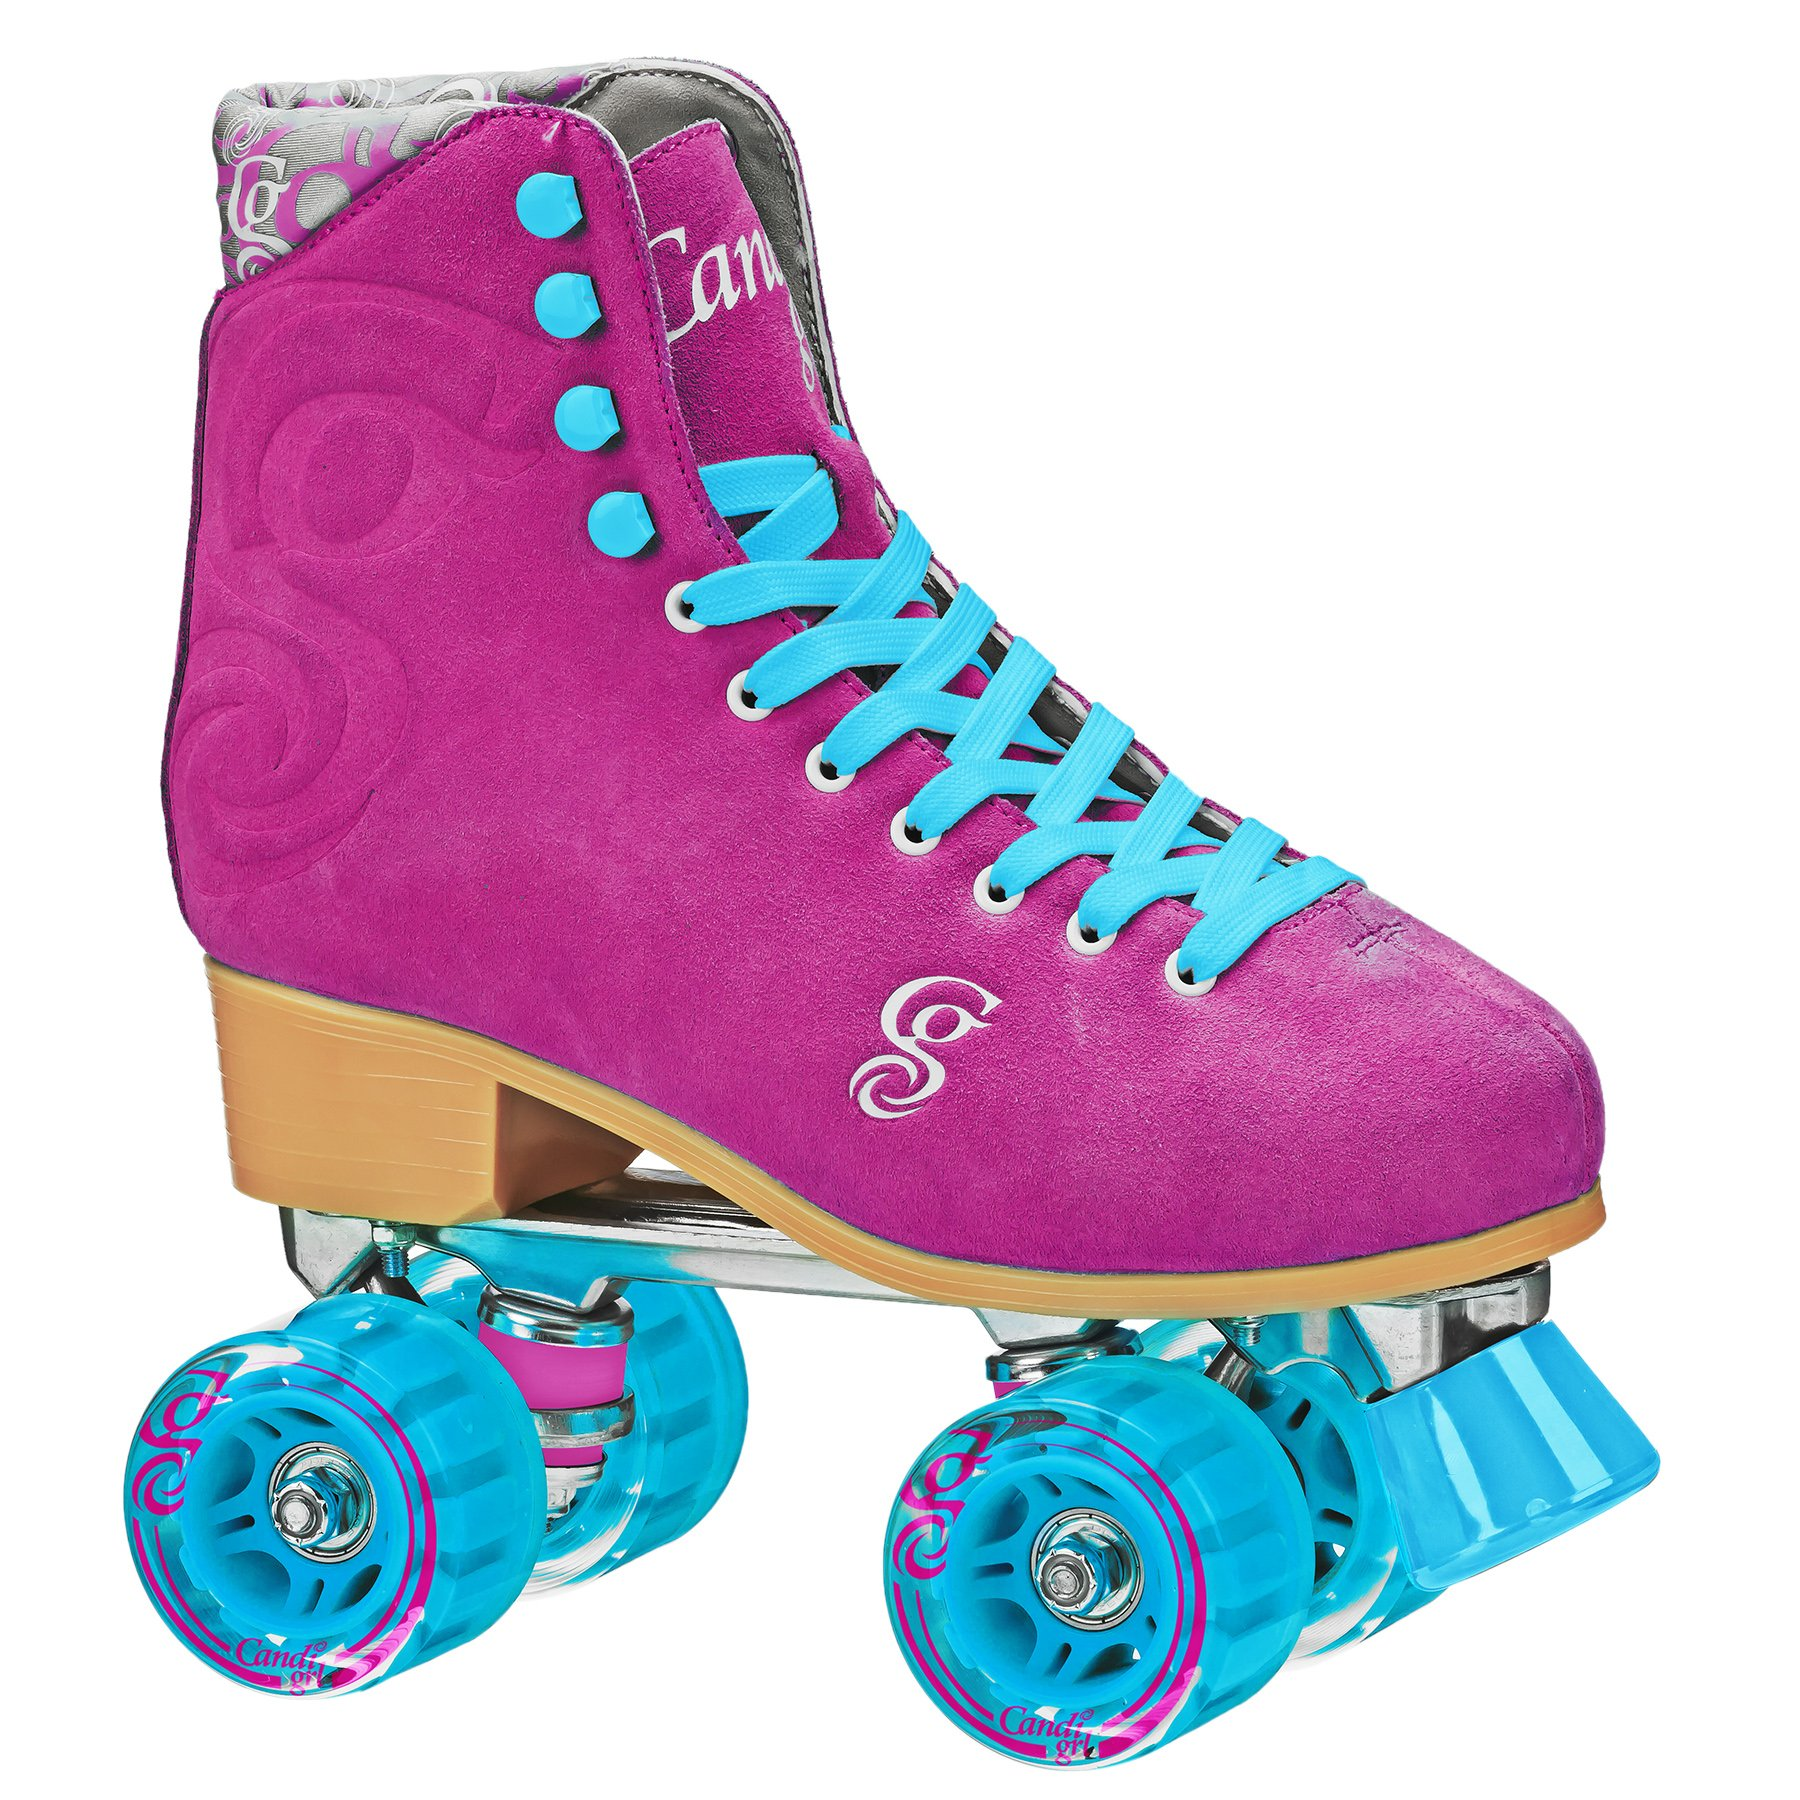 Roller Derby Elite Candi Girl Women's Carlin Roller Skates, Raspberry, Size 08 by Roller Derby